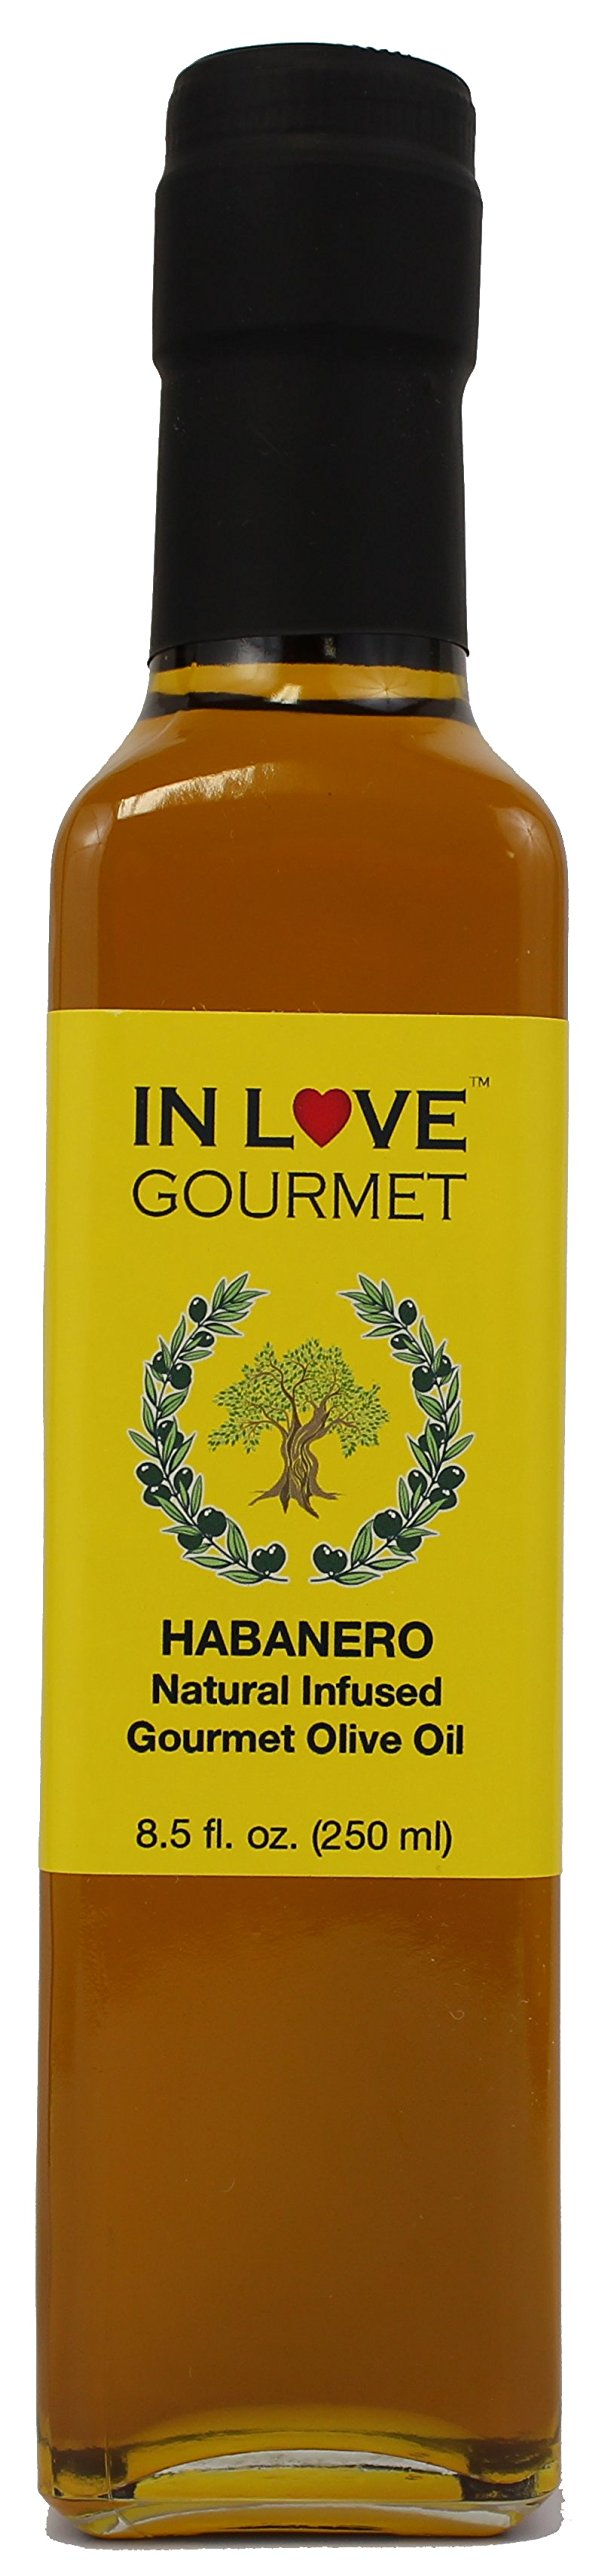 In Love Gourmet Habanero Natural Flavor Infused Olive Oil 250ML/8.5oz Spicy Habanero Oil, Spice up your Fish, Chicken, Veggies, Pastas.